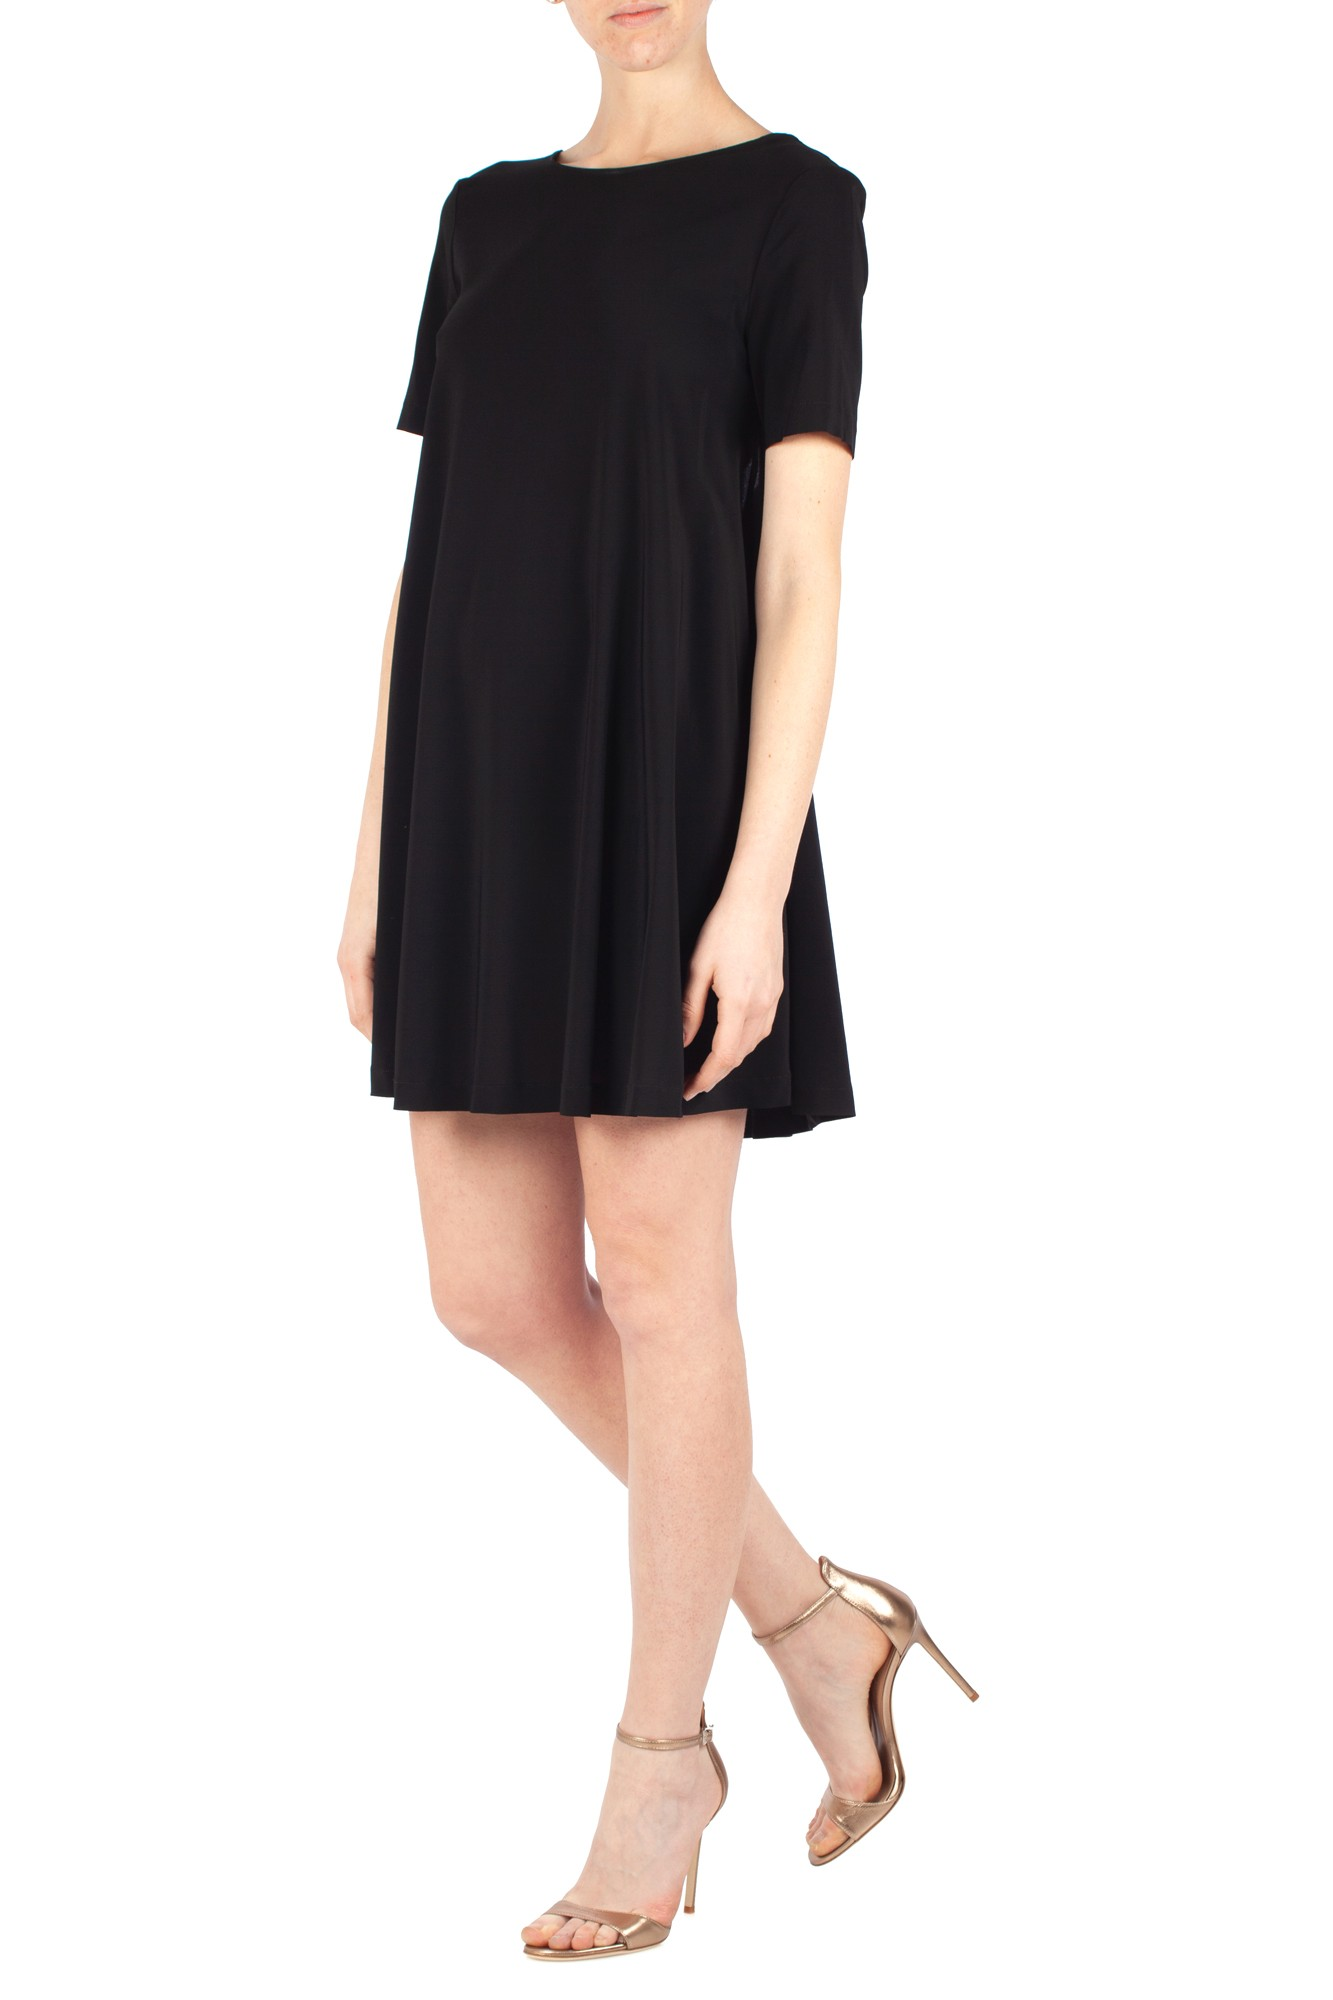 Short black dress - black JUCCA | Dresses | J3117011003